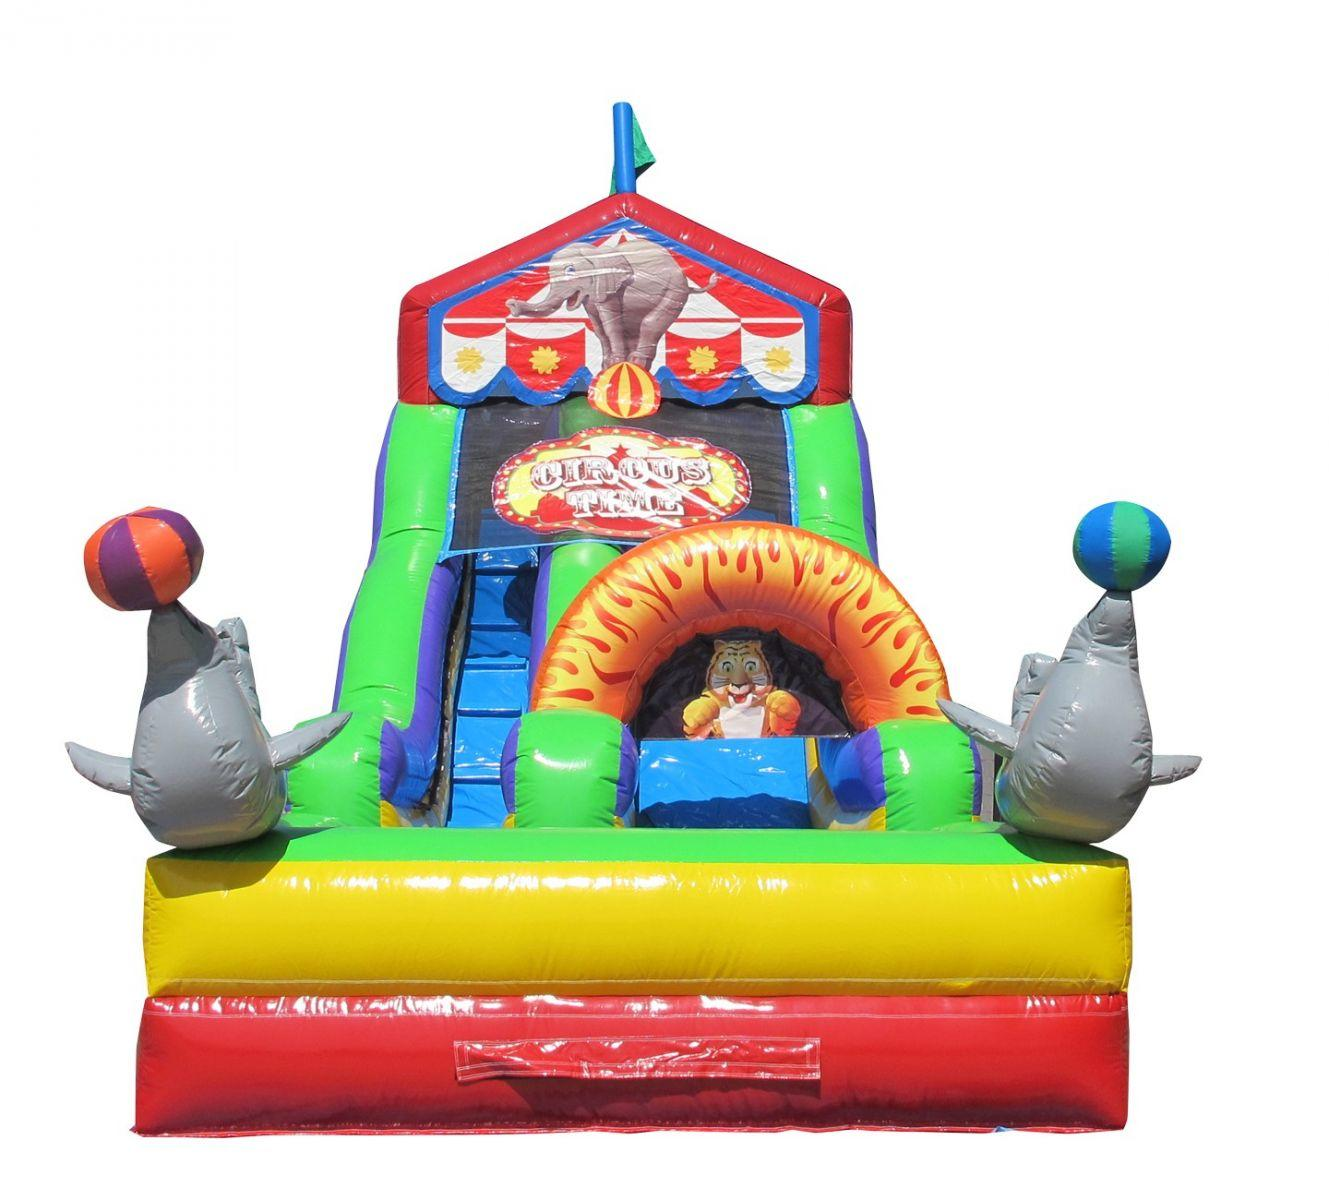 Chicago Circus Time Carnival Themed Waterslide Inflatable Rental Chicago IL